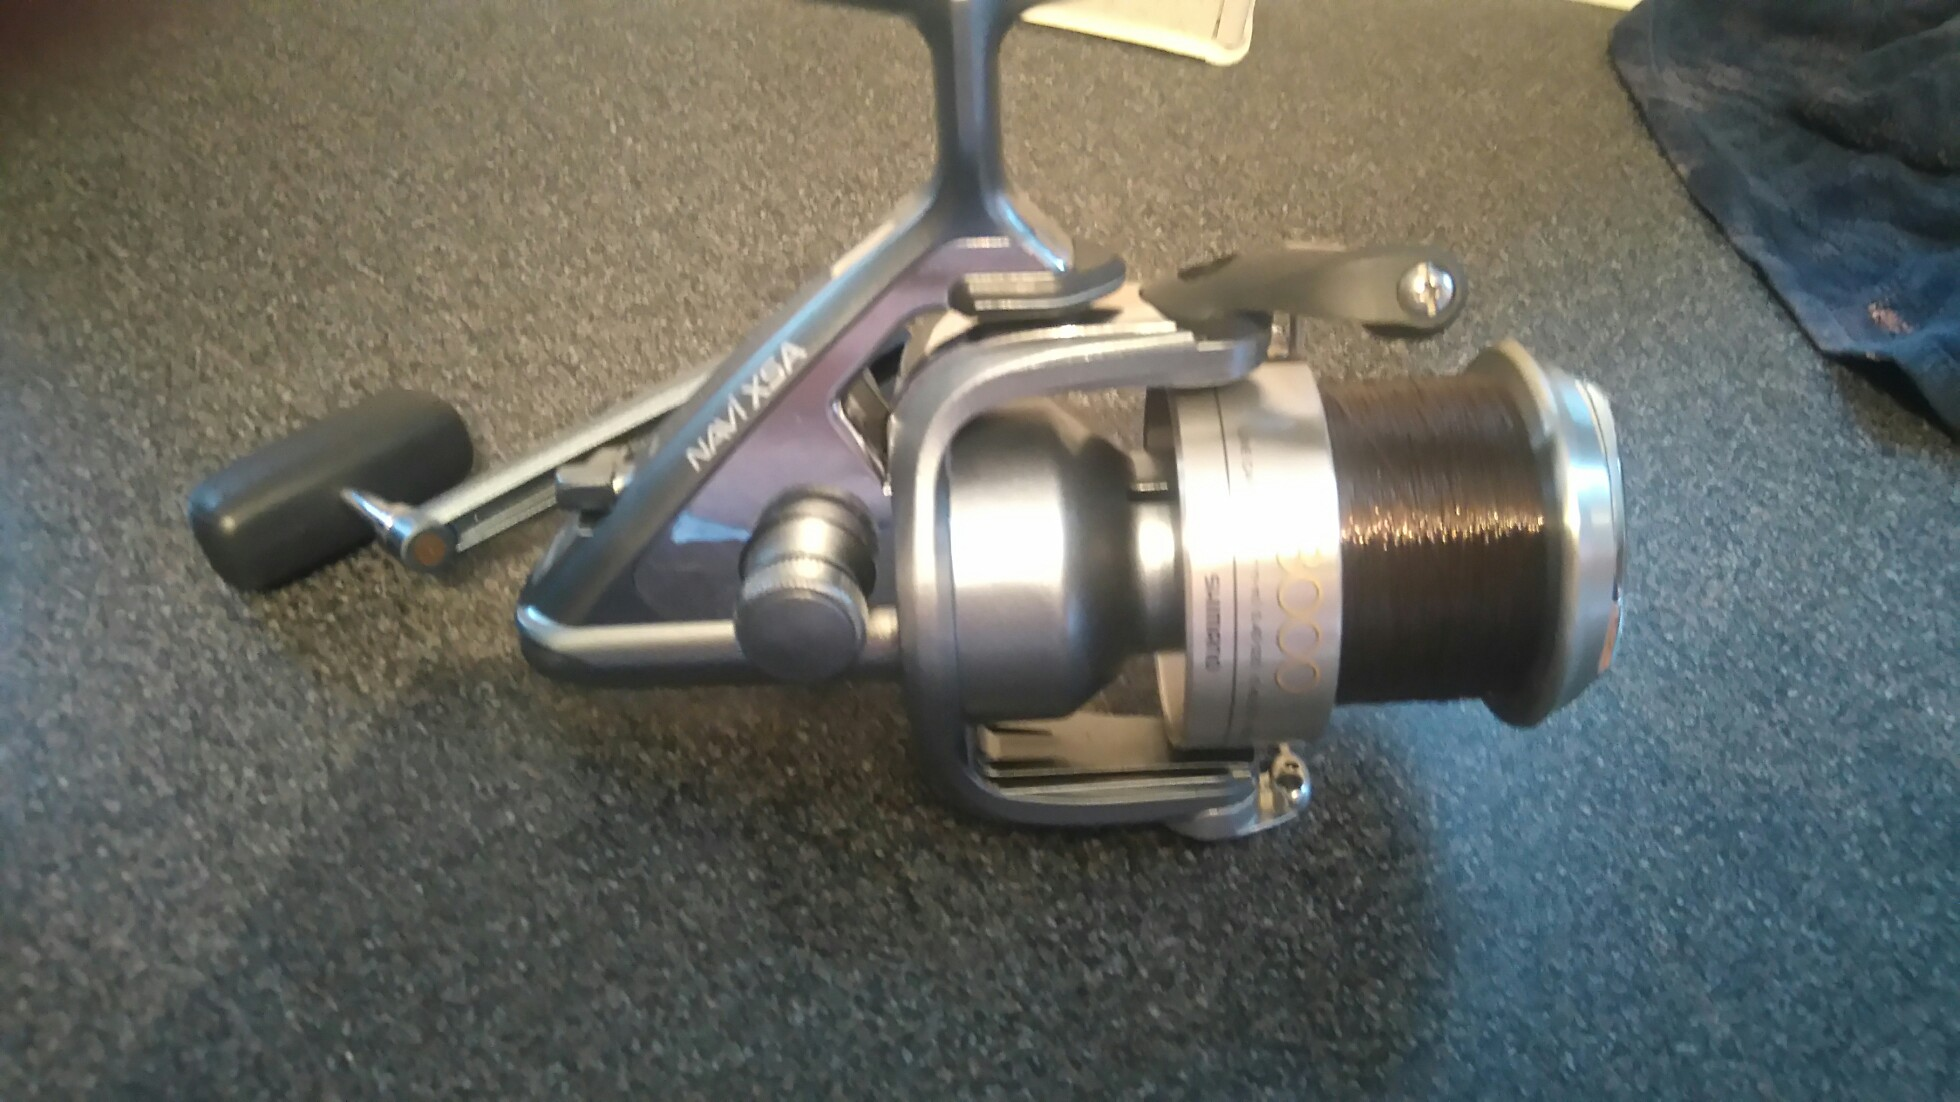 Shimano fishing reel for sale in uk view 136 bargains for Shimano fishing reels for sale